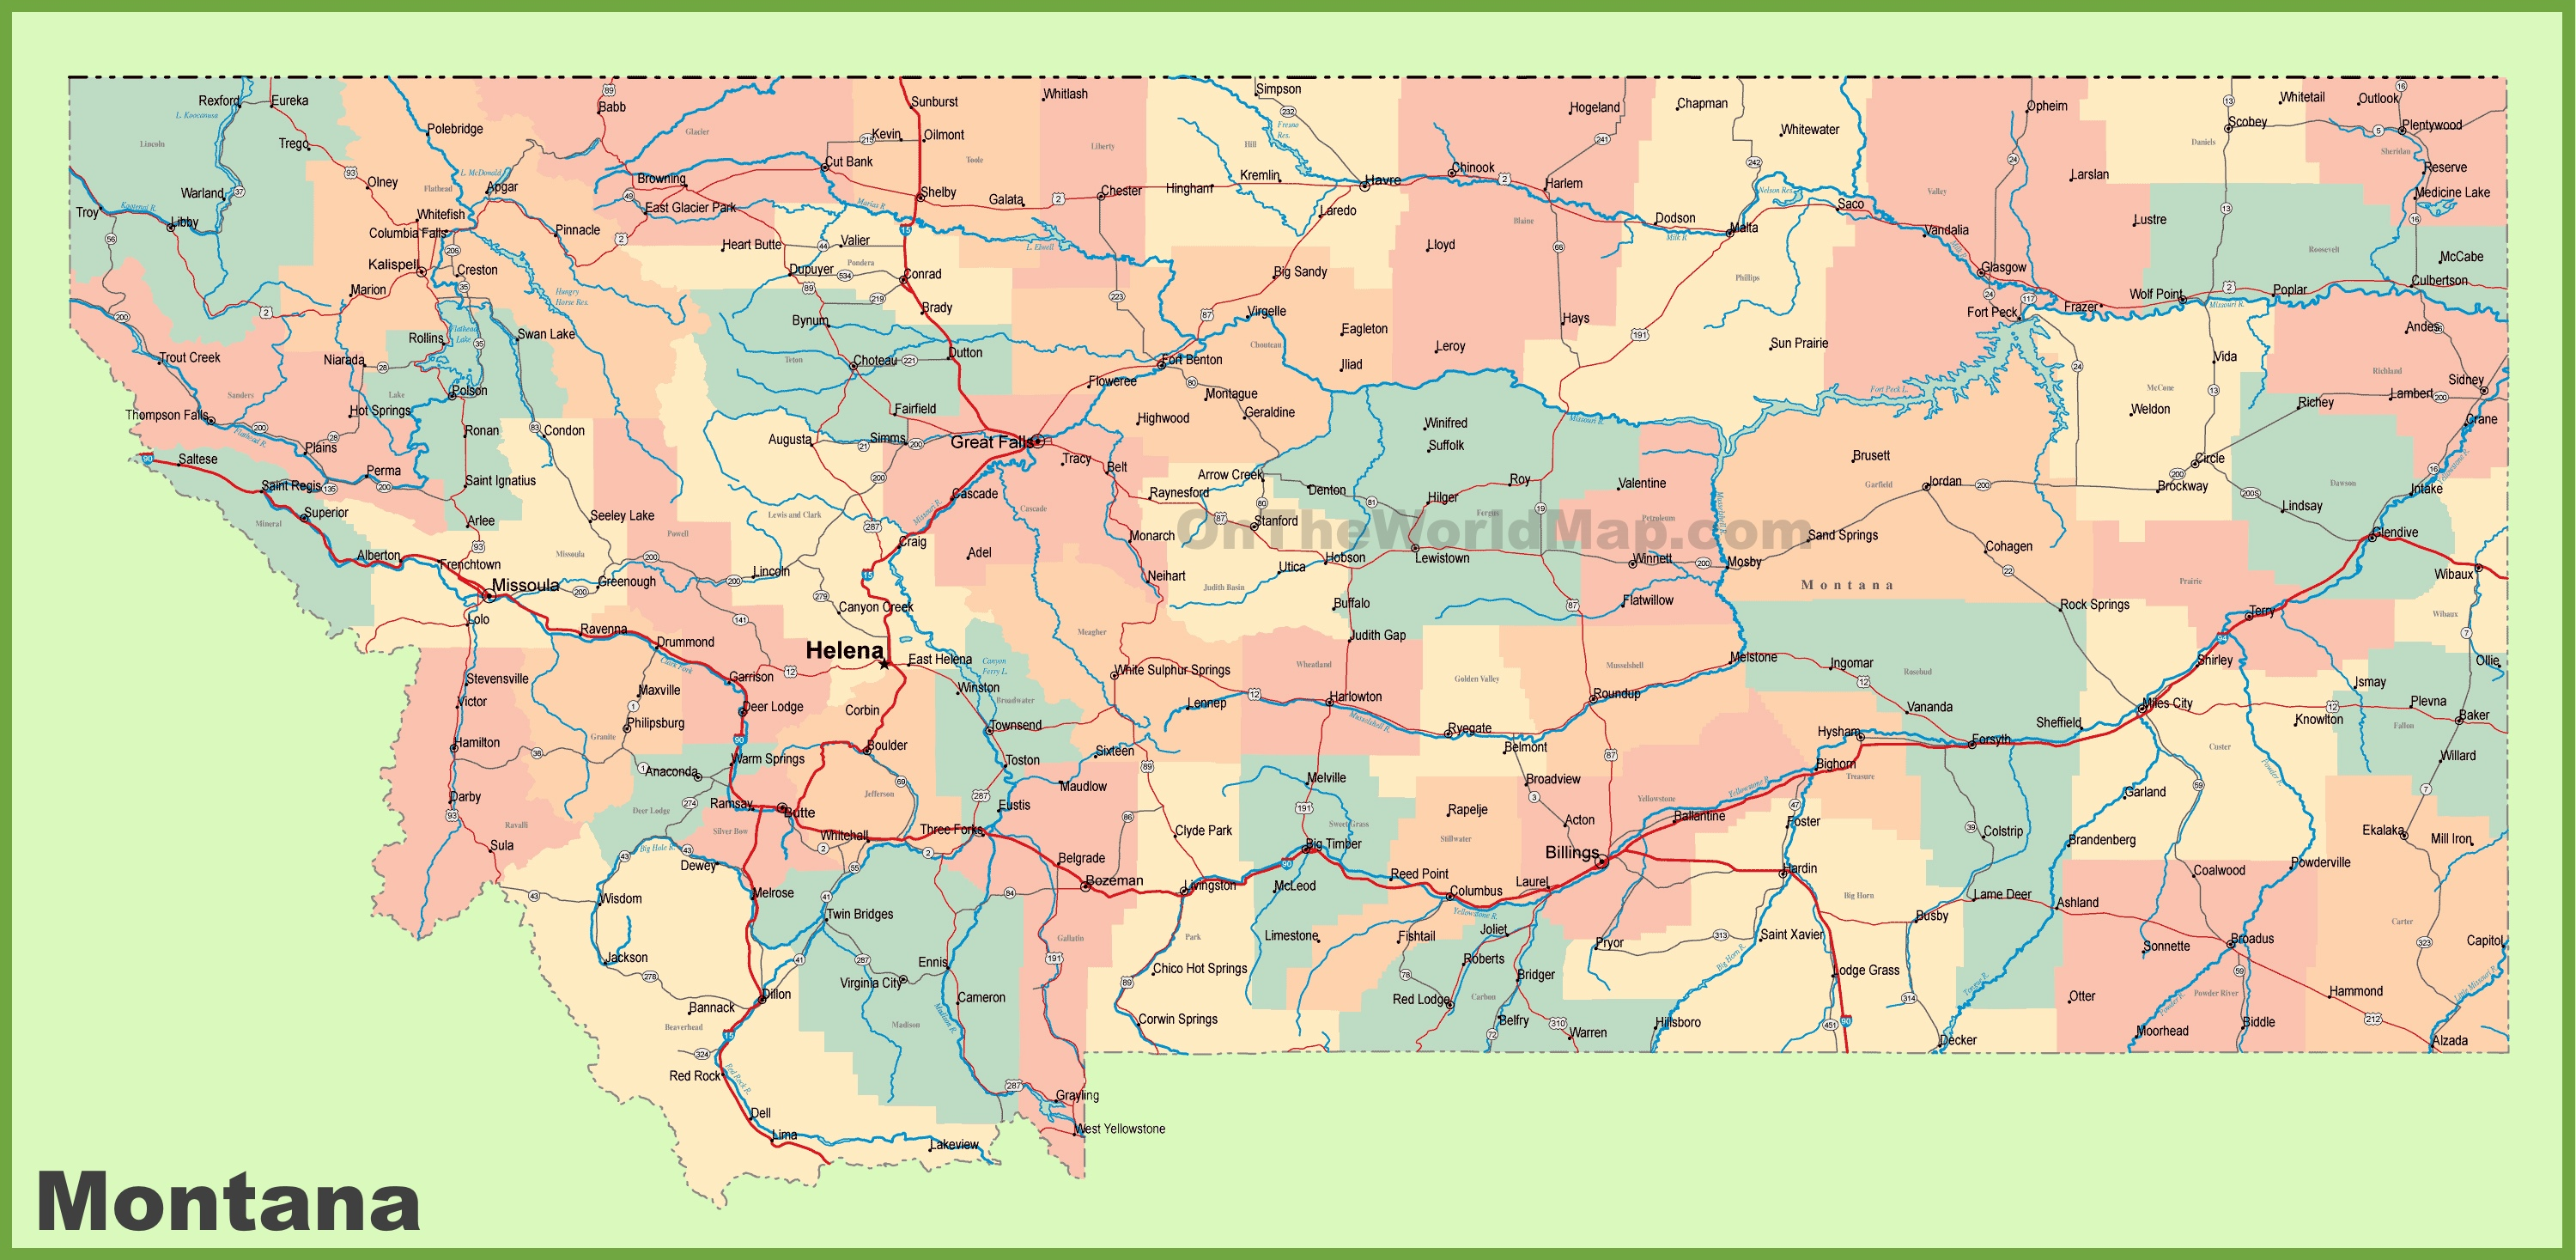 Map Of Montana With Cities Road map of Montana with cities